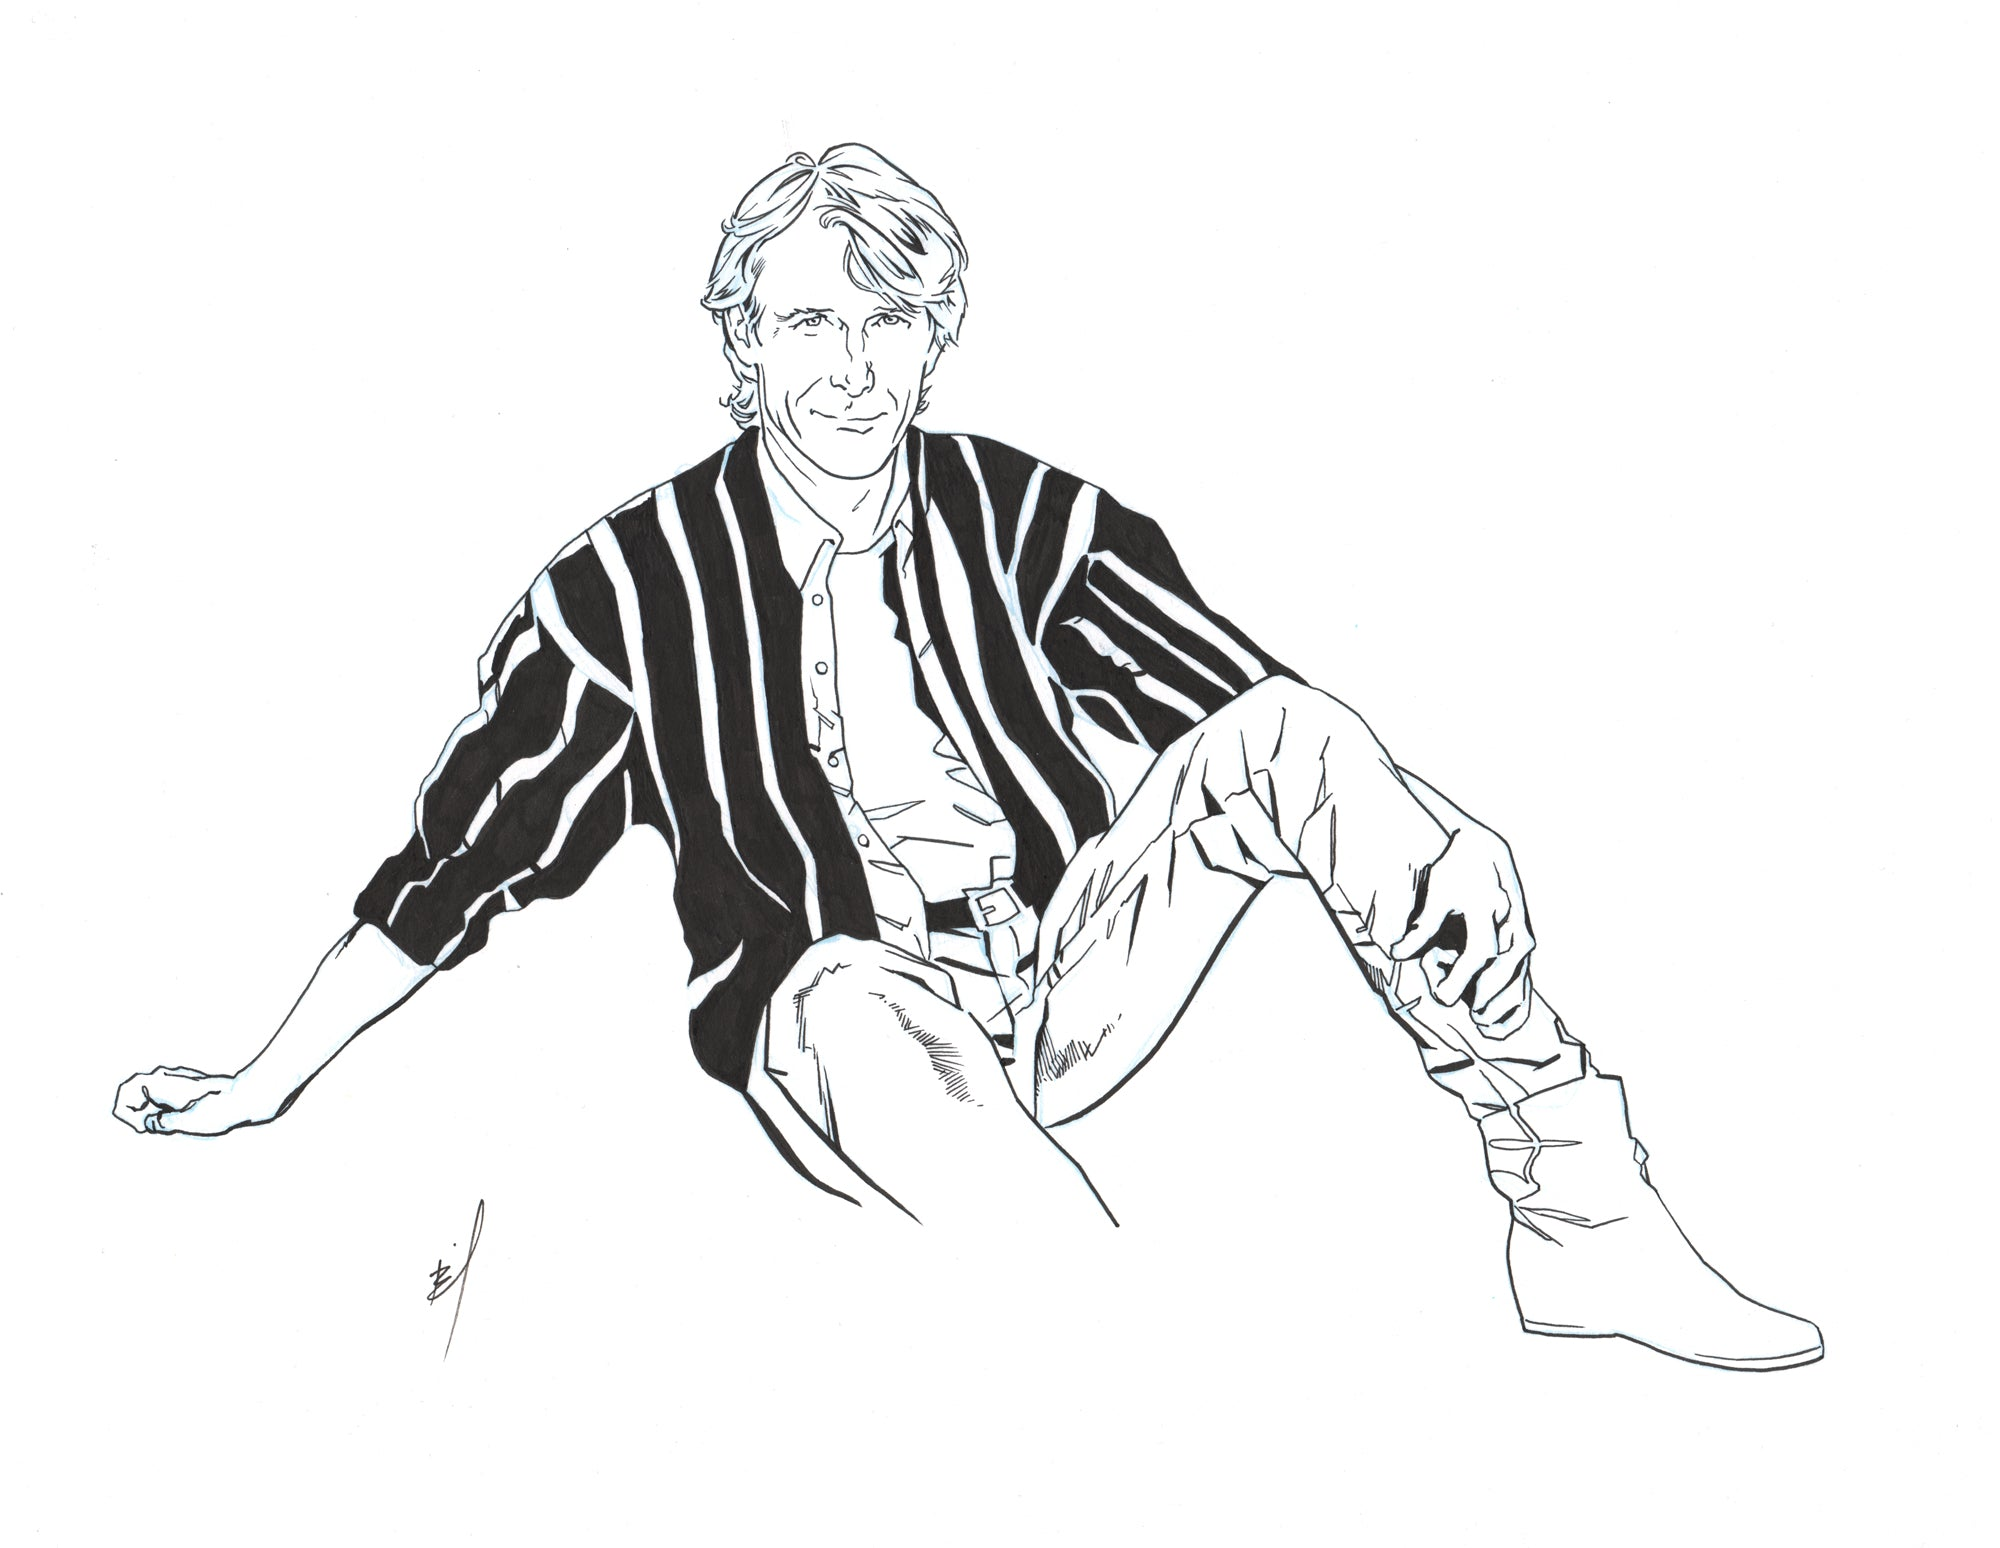 Drawing of Michael Bay being cool